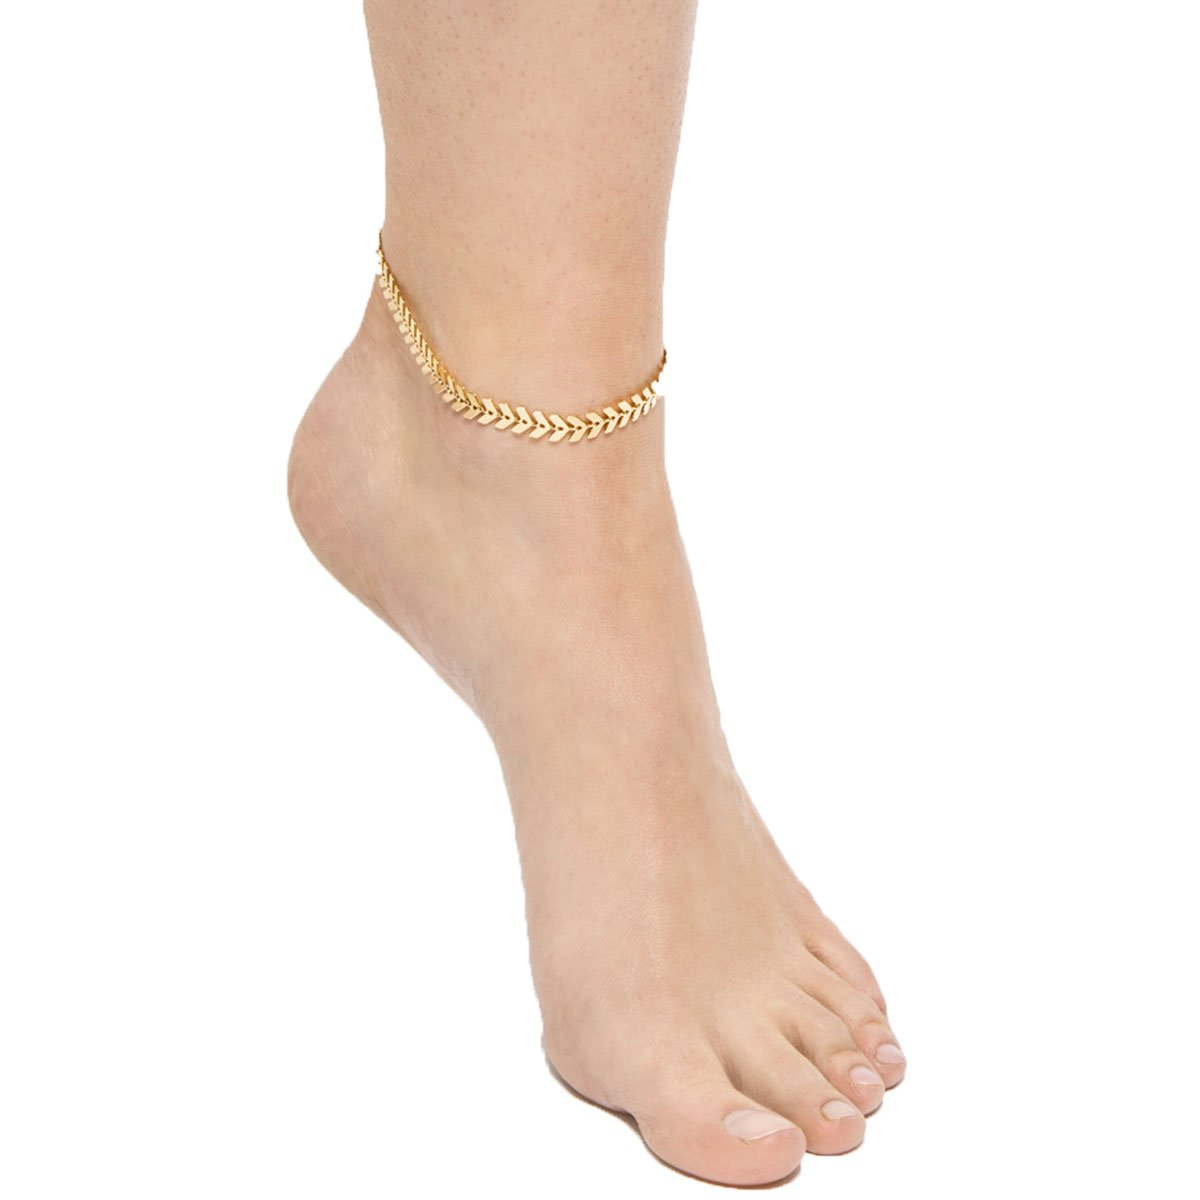 Arrow Anklet Bracelet Gold Silver Beach Foot Chain for Women Ankle Jewelry MISSU JEWELLRY